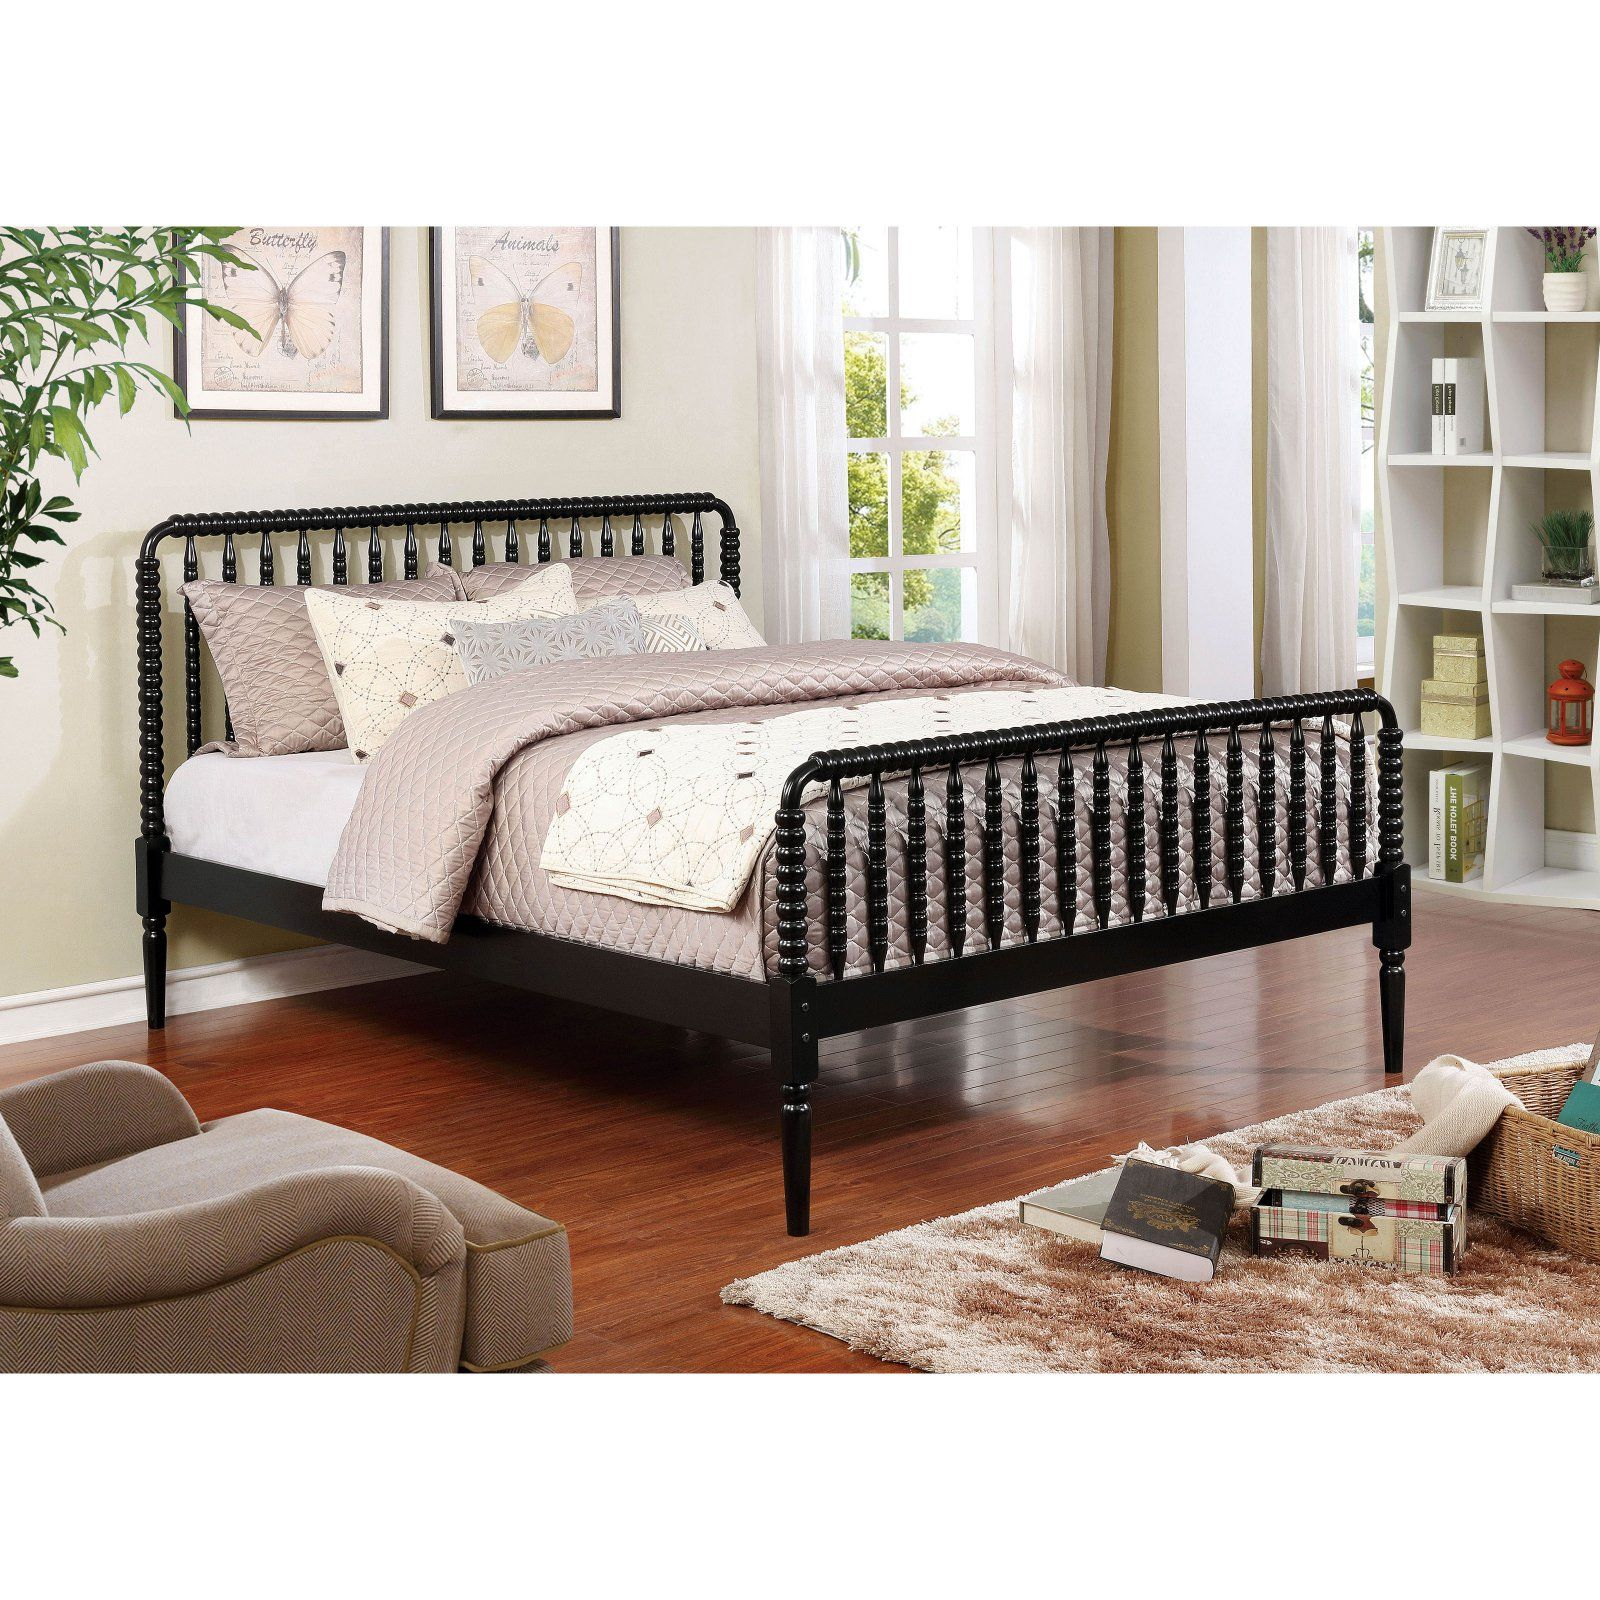 Furniture of America Jenny Lind Rail Bed, Size Queen in